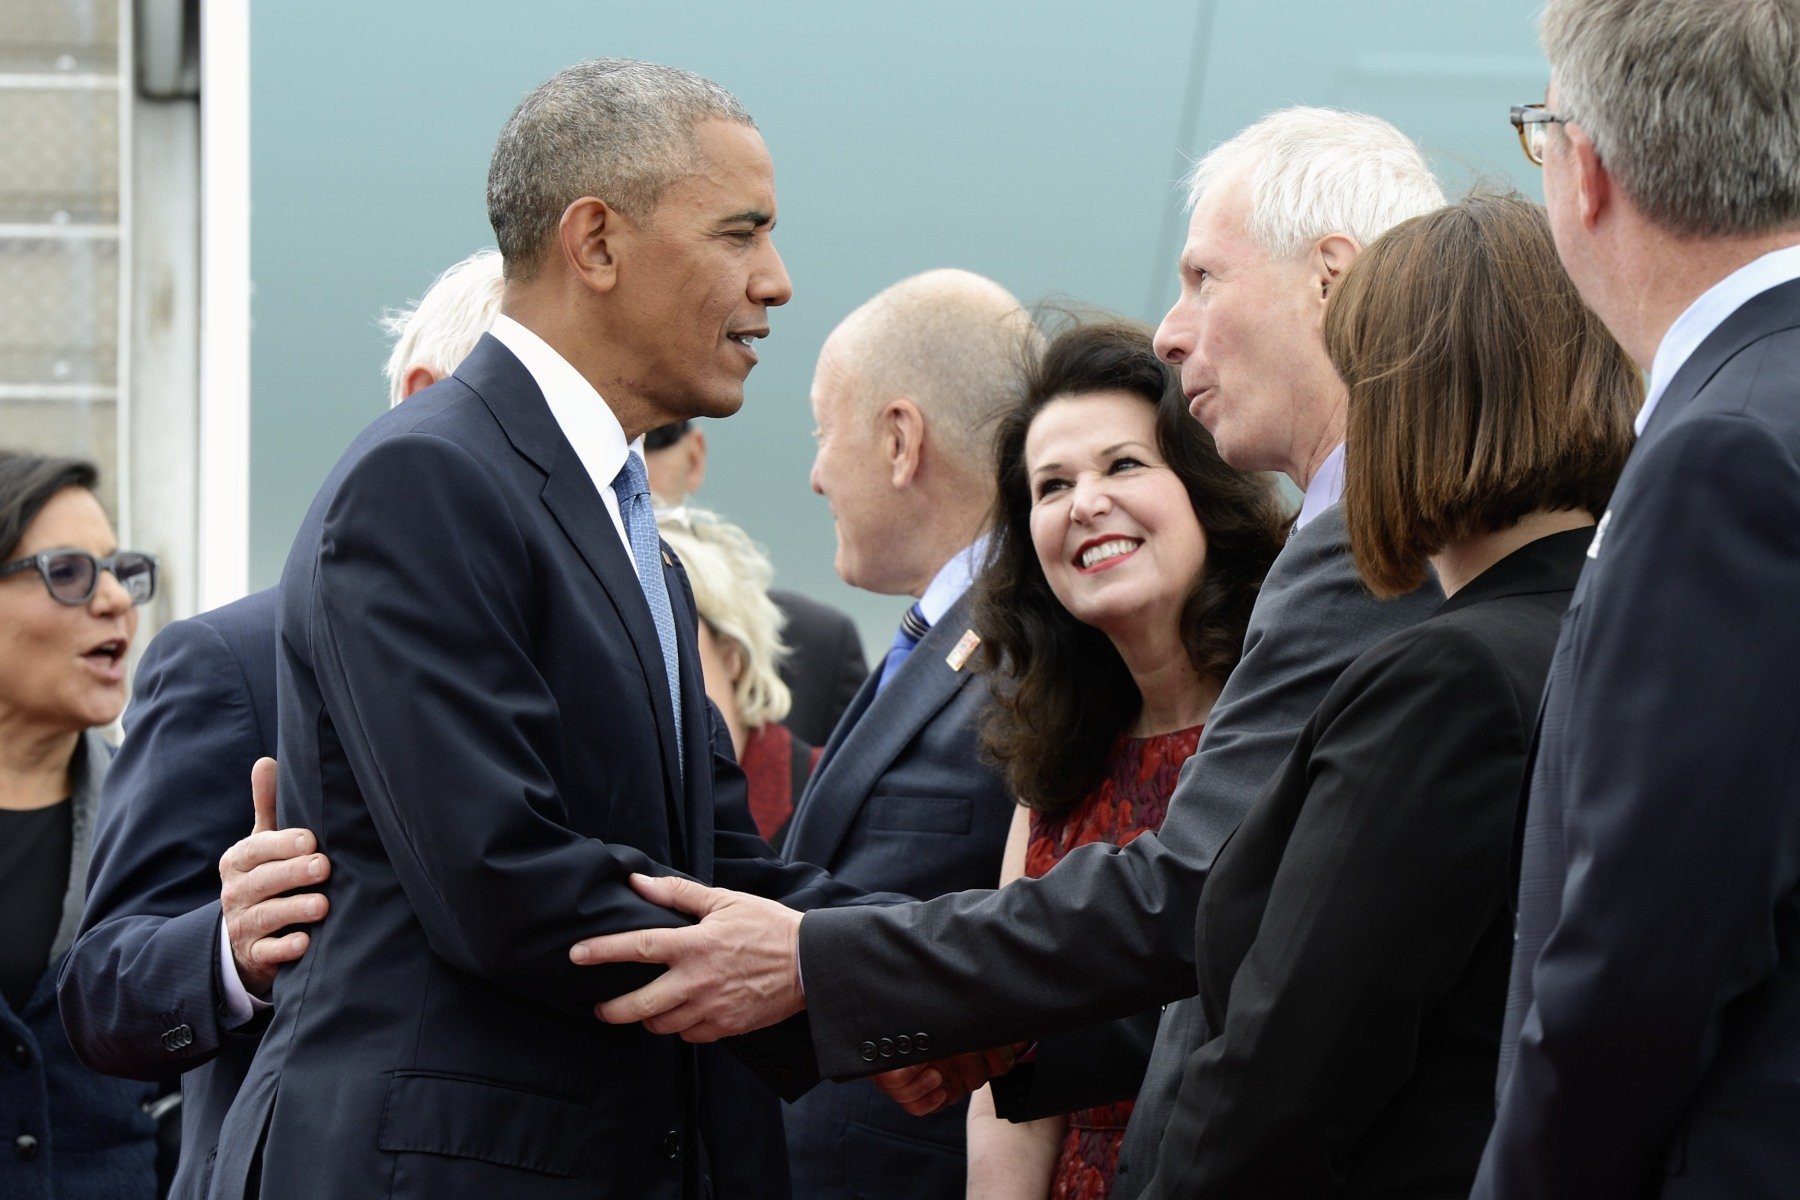 President Obama was also welcomed by the Honourable Stéphane Dion, Minister of Foreign Affairs.